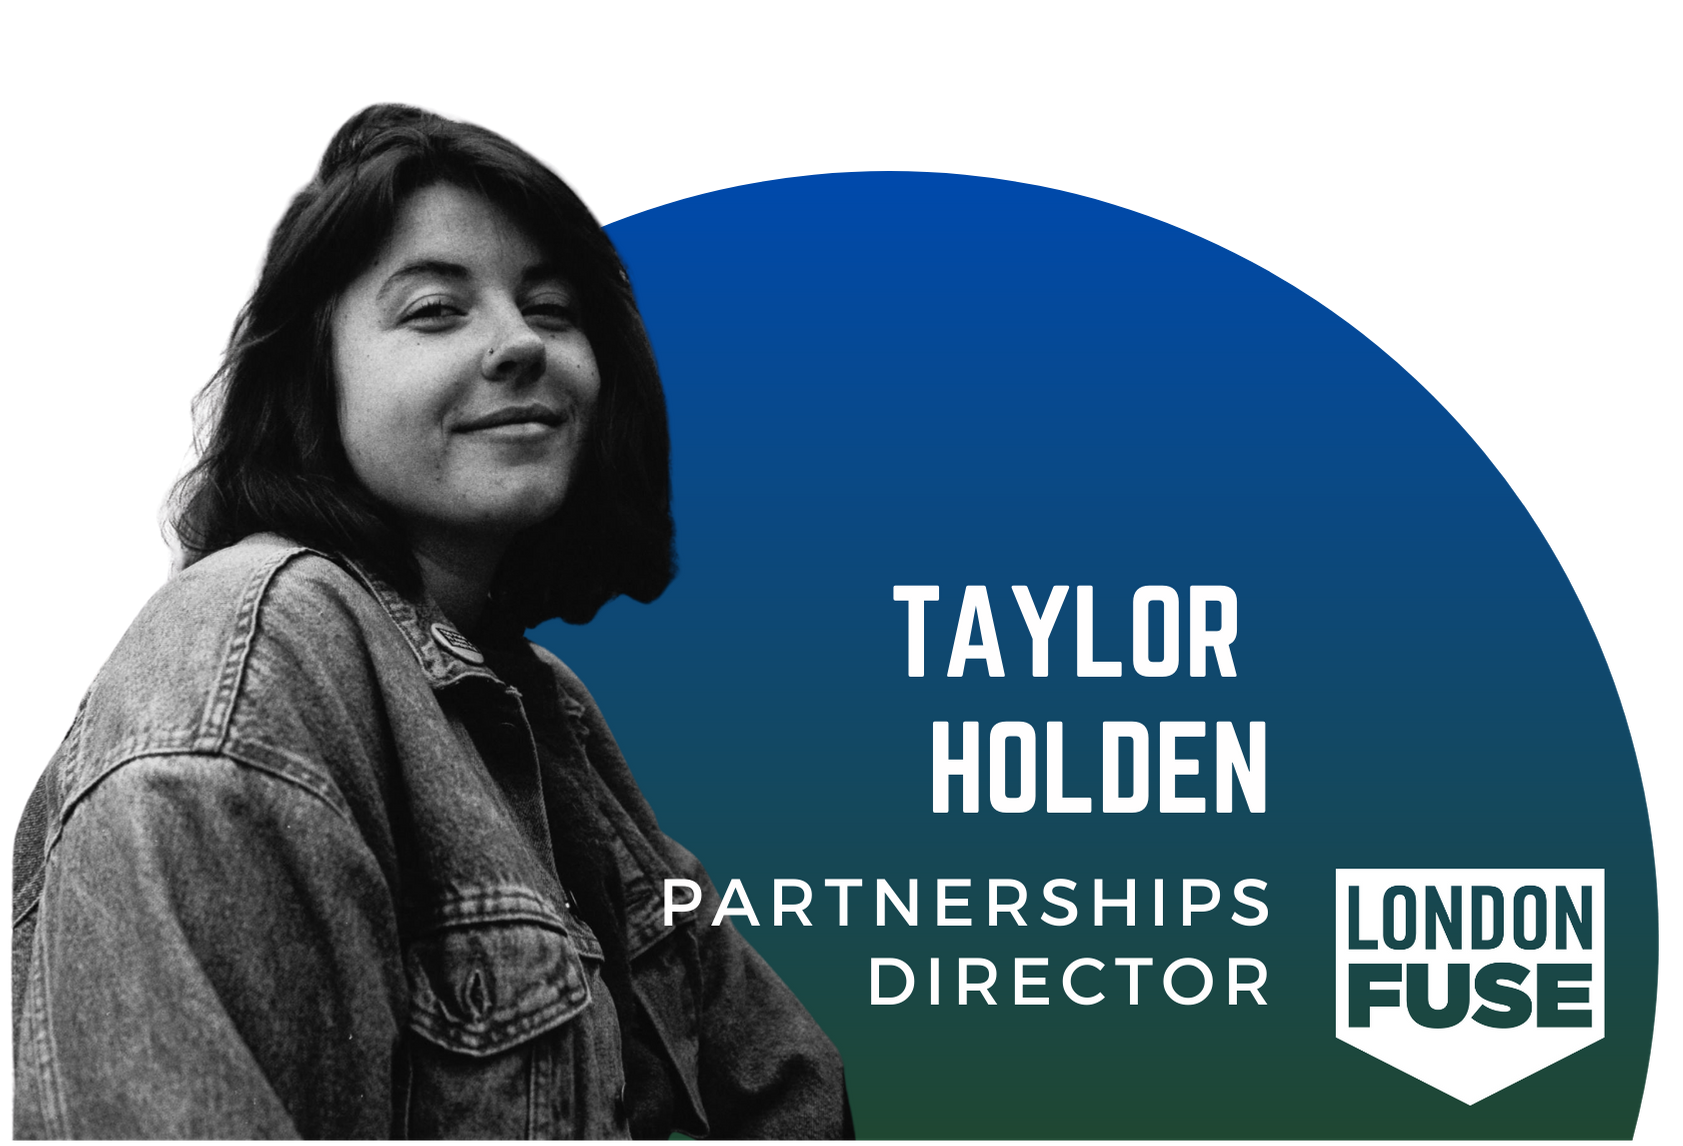 """A black and white image of a woman smiling at the camera. She has shoulder length hair and is wearing a jean jacket. The text next to her says """"Taylor Holden Partnerships Director"""""""